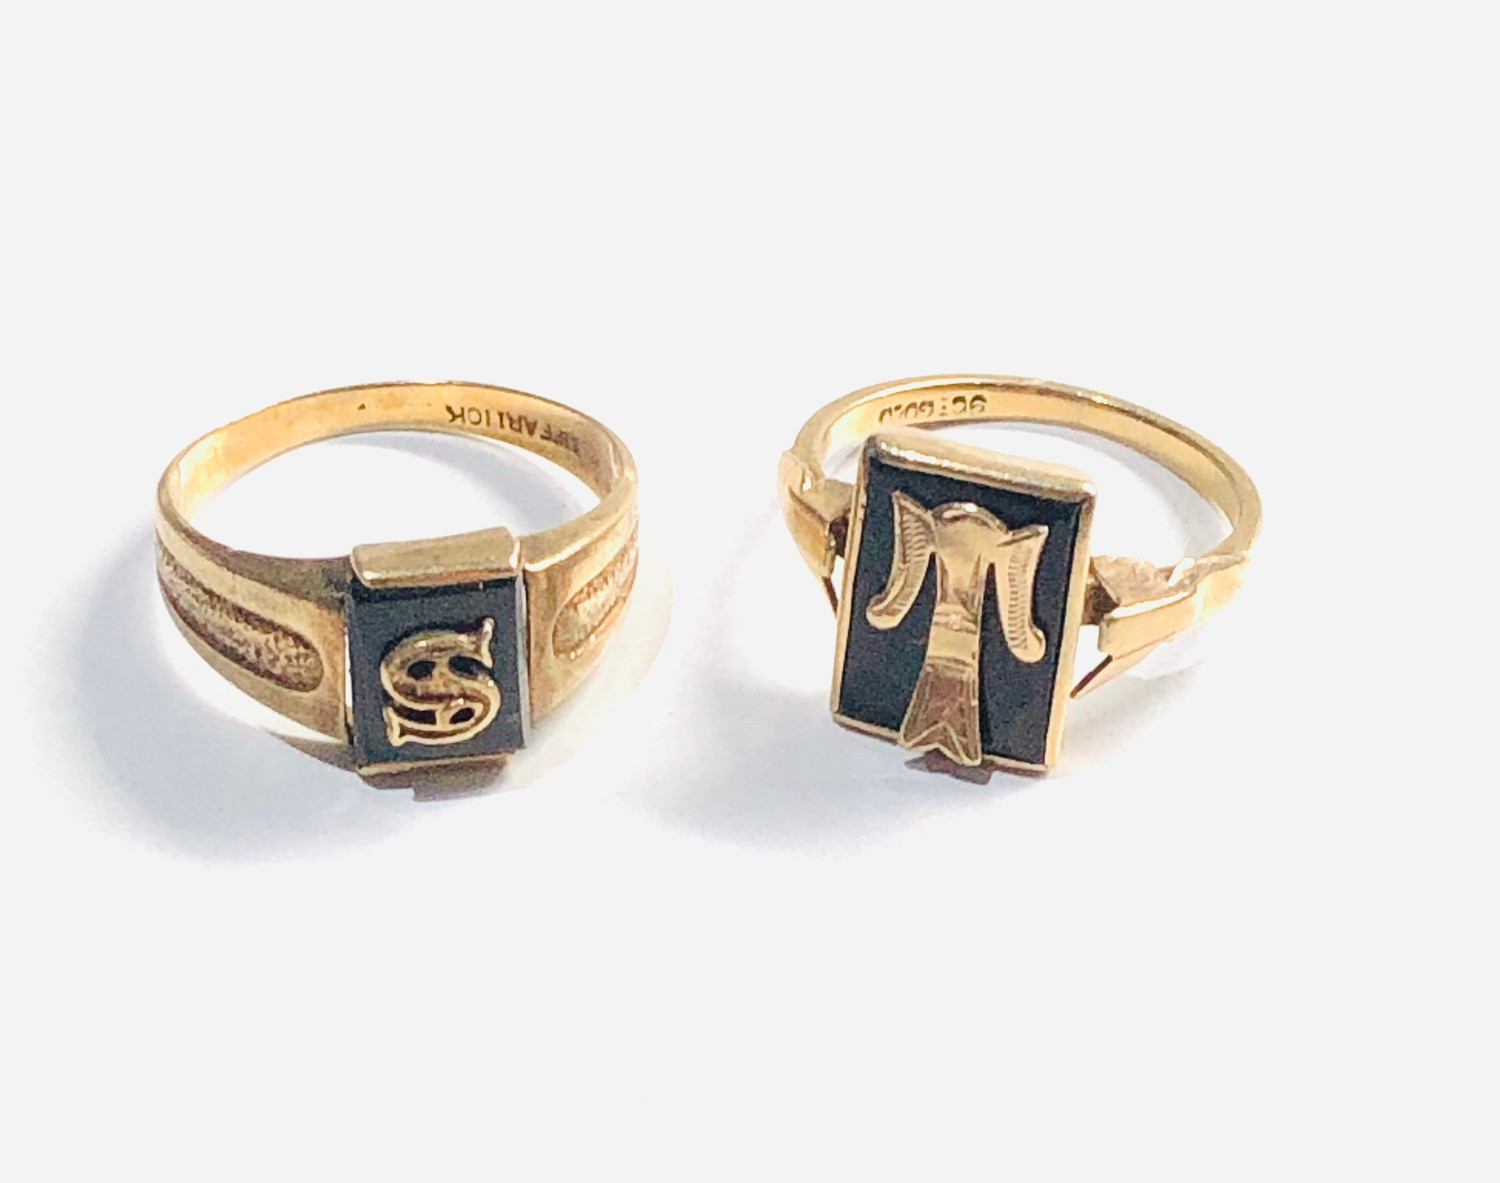 2 x 9ct vintage 9ct Gold initial signet rings 4.7g